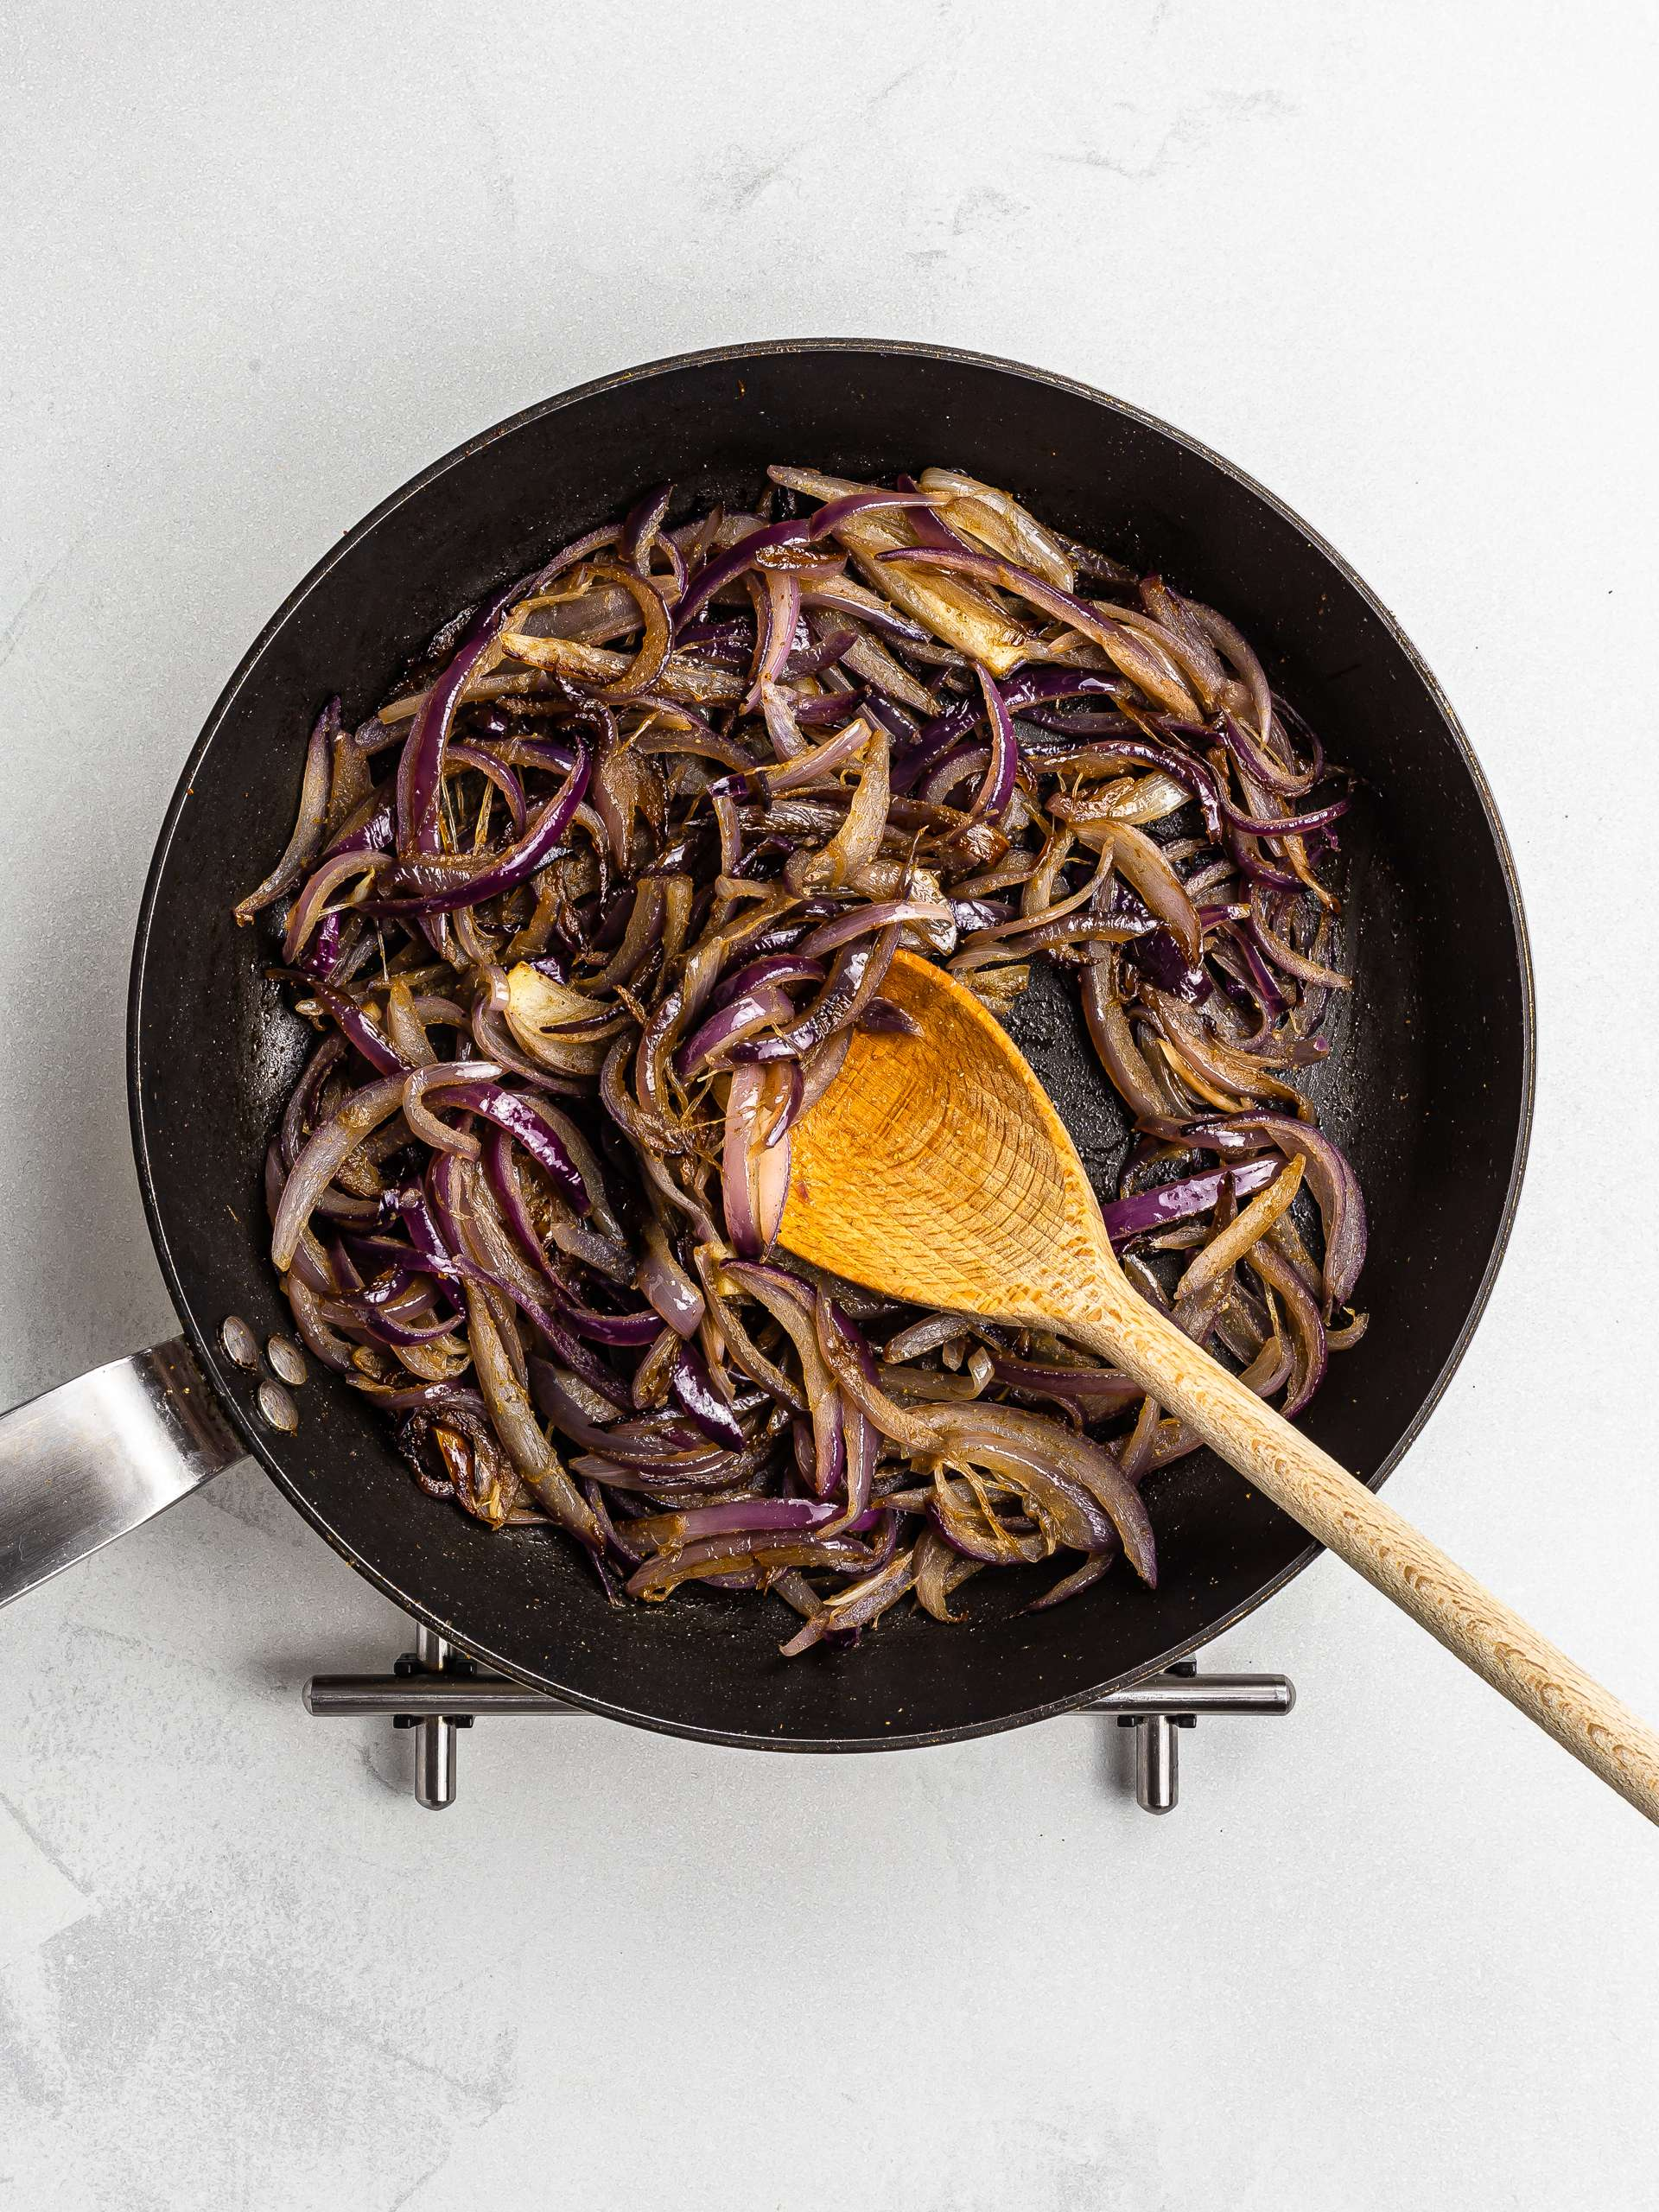 cooked onions in a skillet